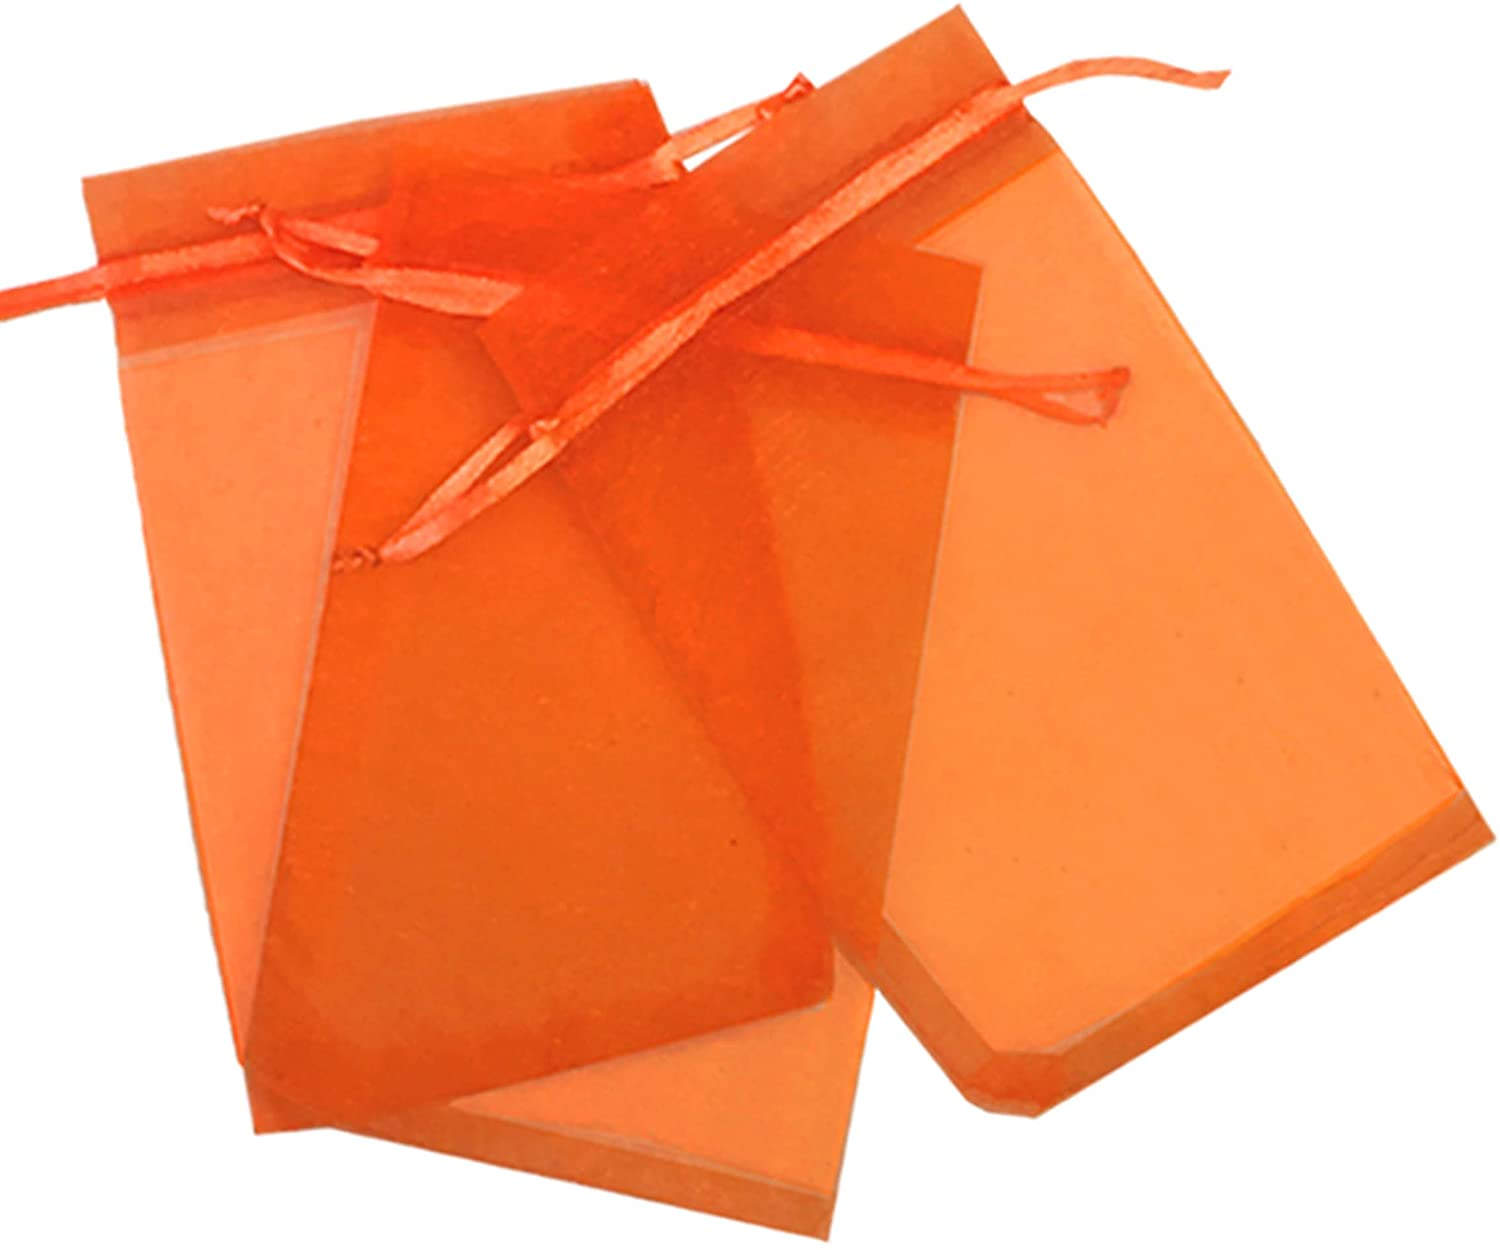 500 Pcs Orange 3x4 Sheer Drawstring Organza Bags Jewelry Pouches Wedding Party Favor Gift Bags Gift Bags Candy Bags [Kyezi Design and Craft]